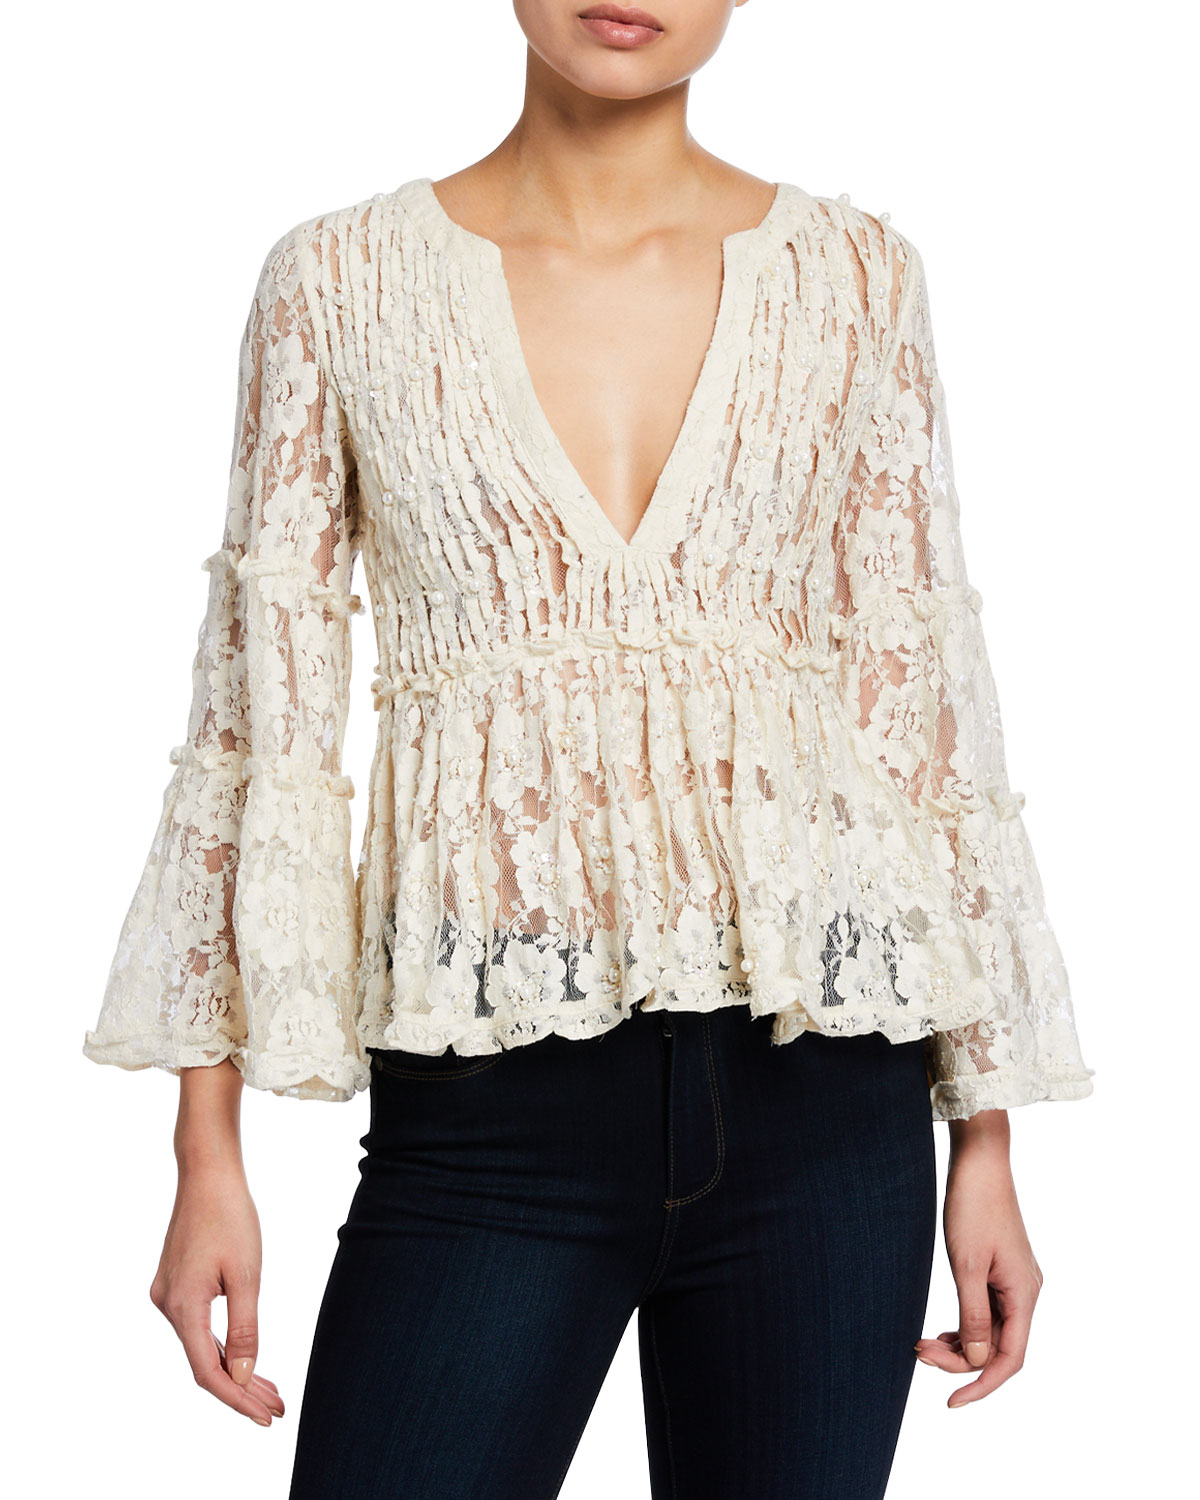 Alexis Tops TANISA V-NECK FLORAL-LACE PEPLUM TOP